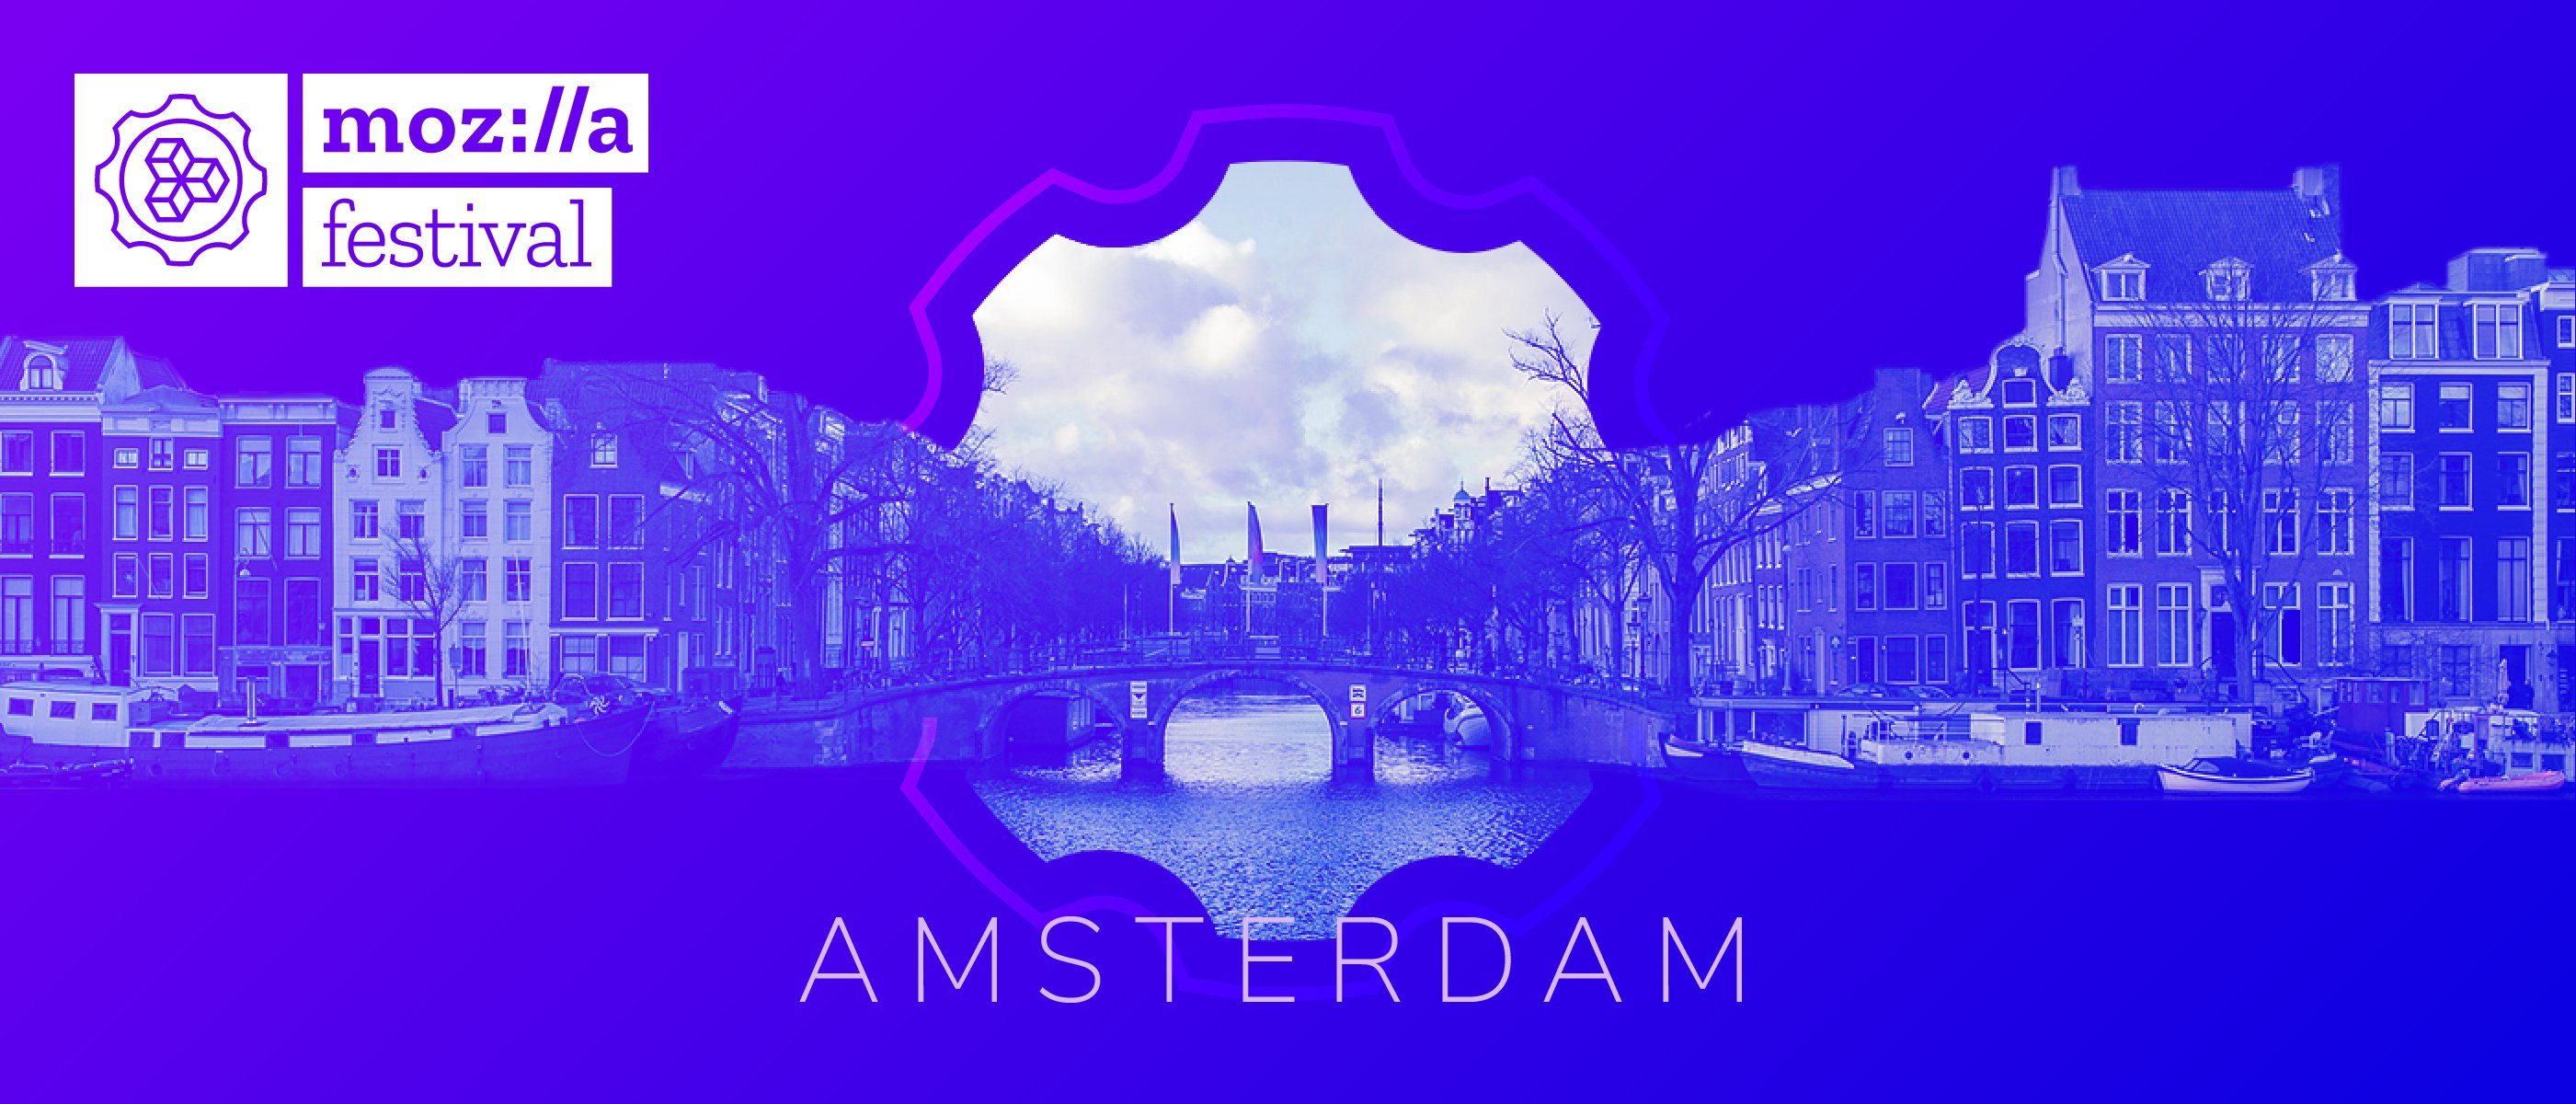 MozFest Is Moving To Amsterdam March 2021